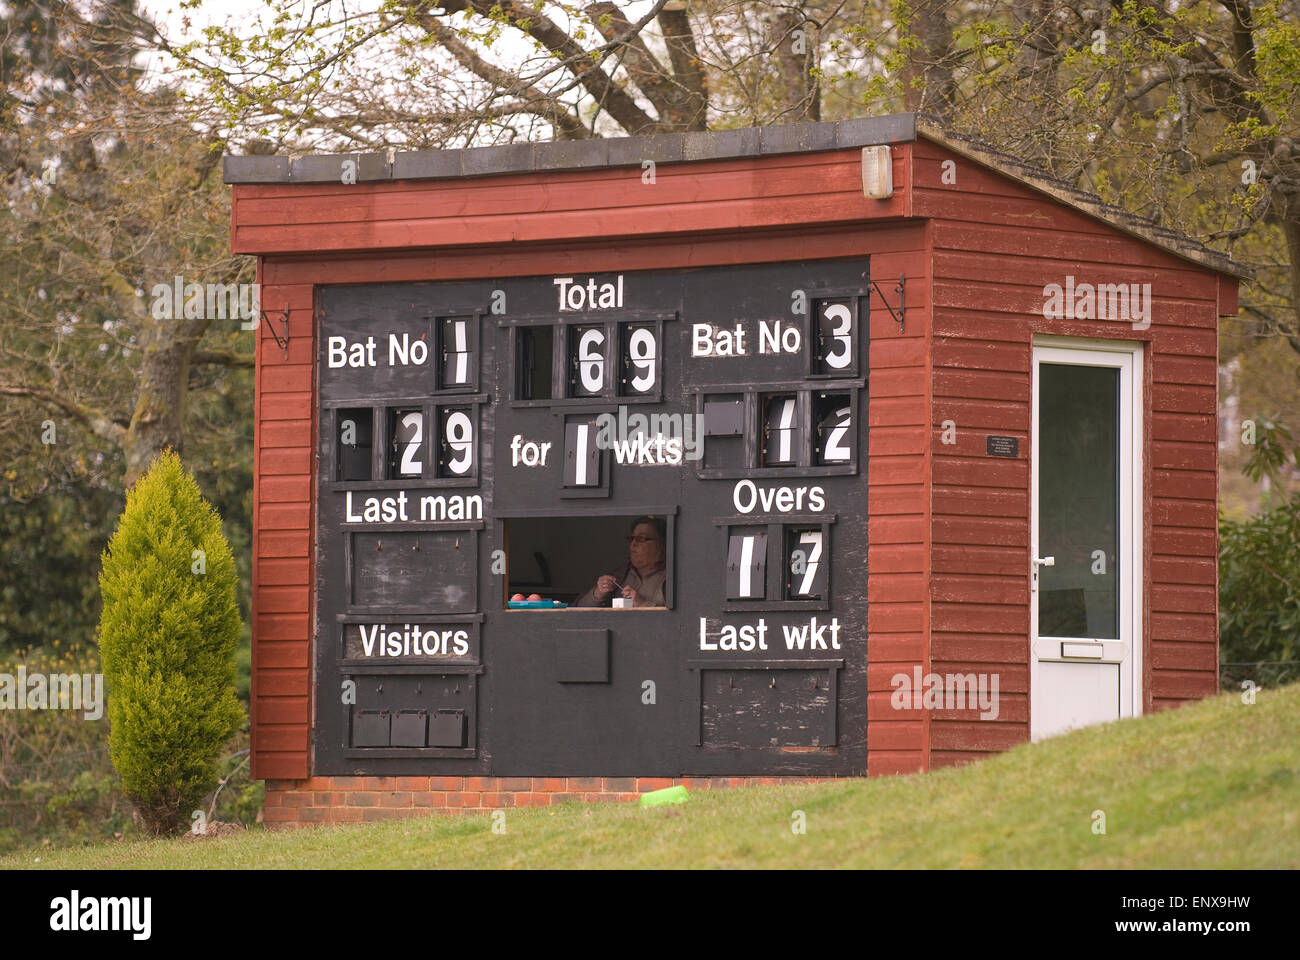 Cricket scorer and board during a local village green match, Liphook, Hampshire, UK. - Stock Image